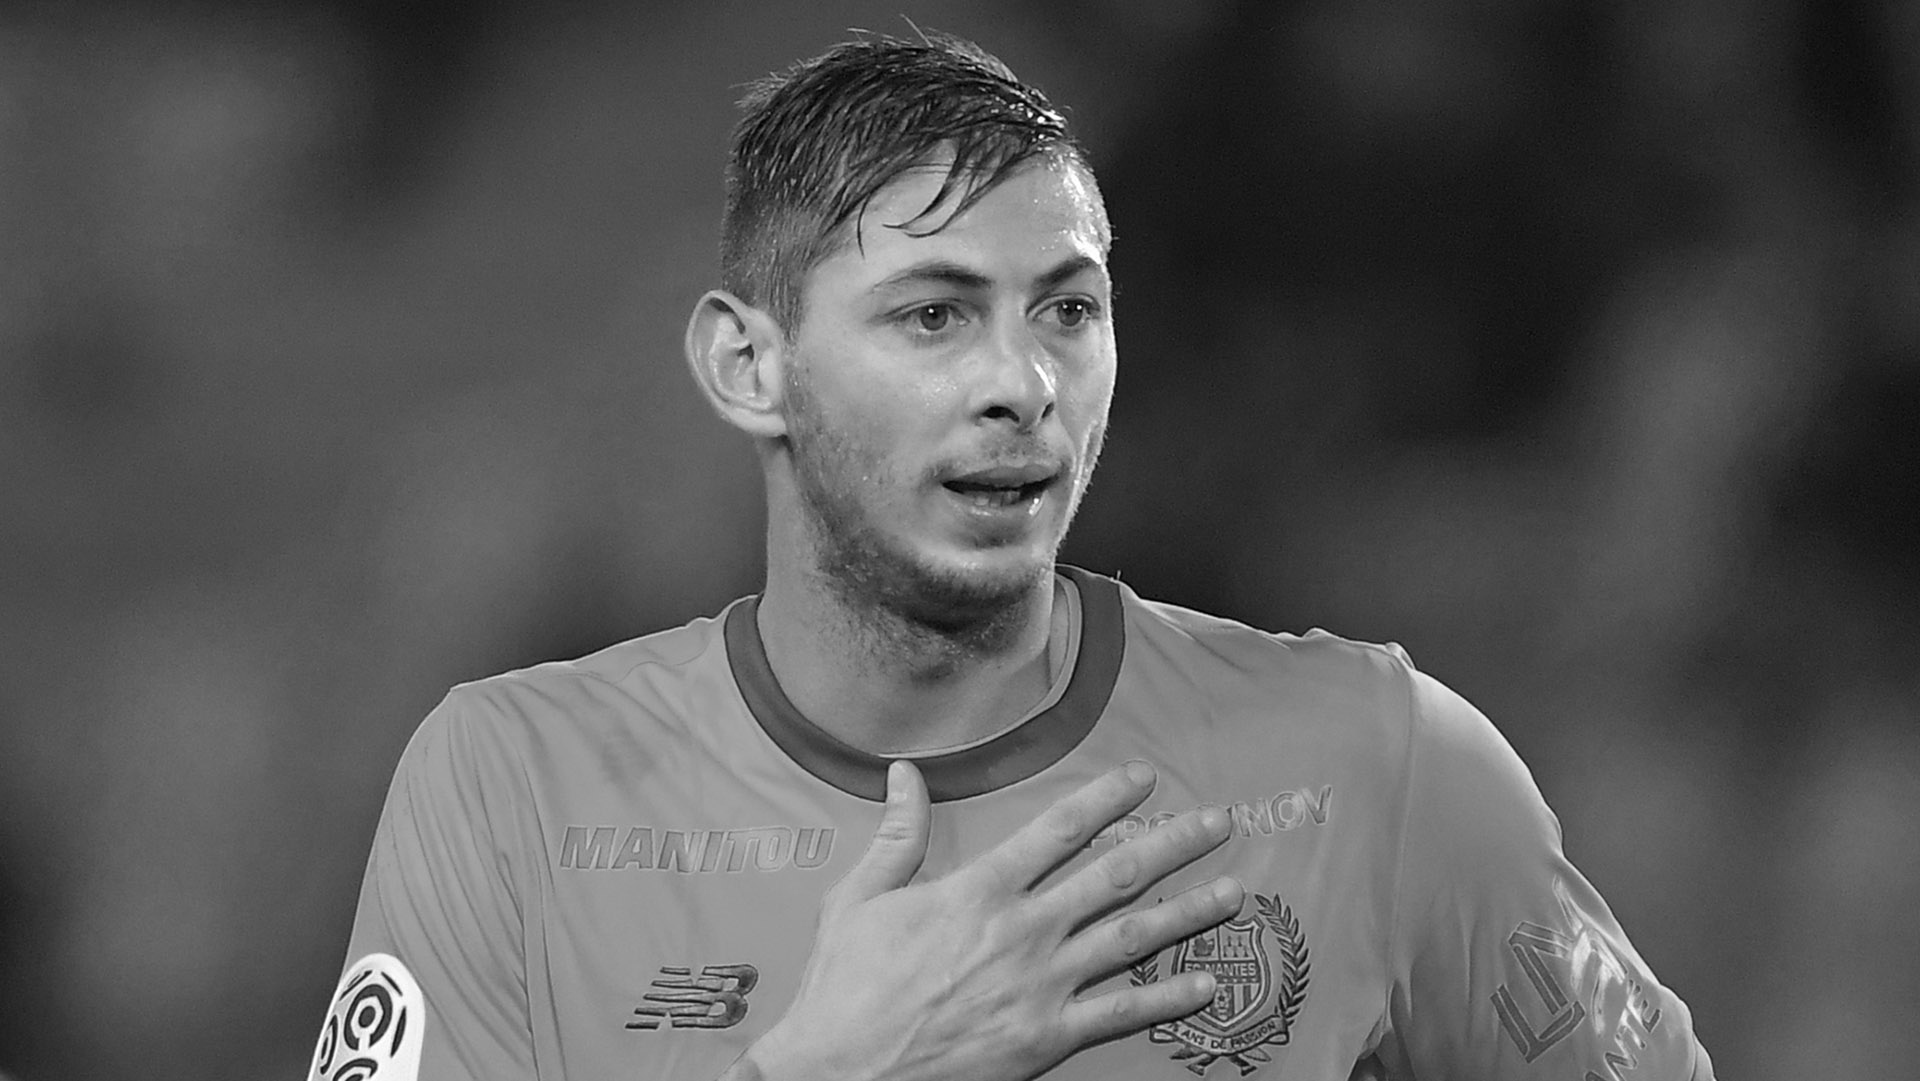 Emiliano Sala exposed to harmful levels of carbon monoxide before plane crash